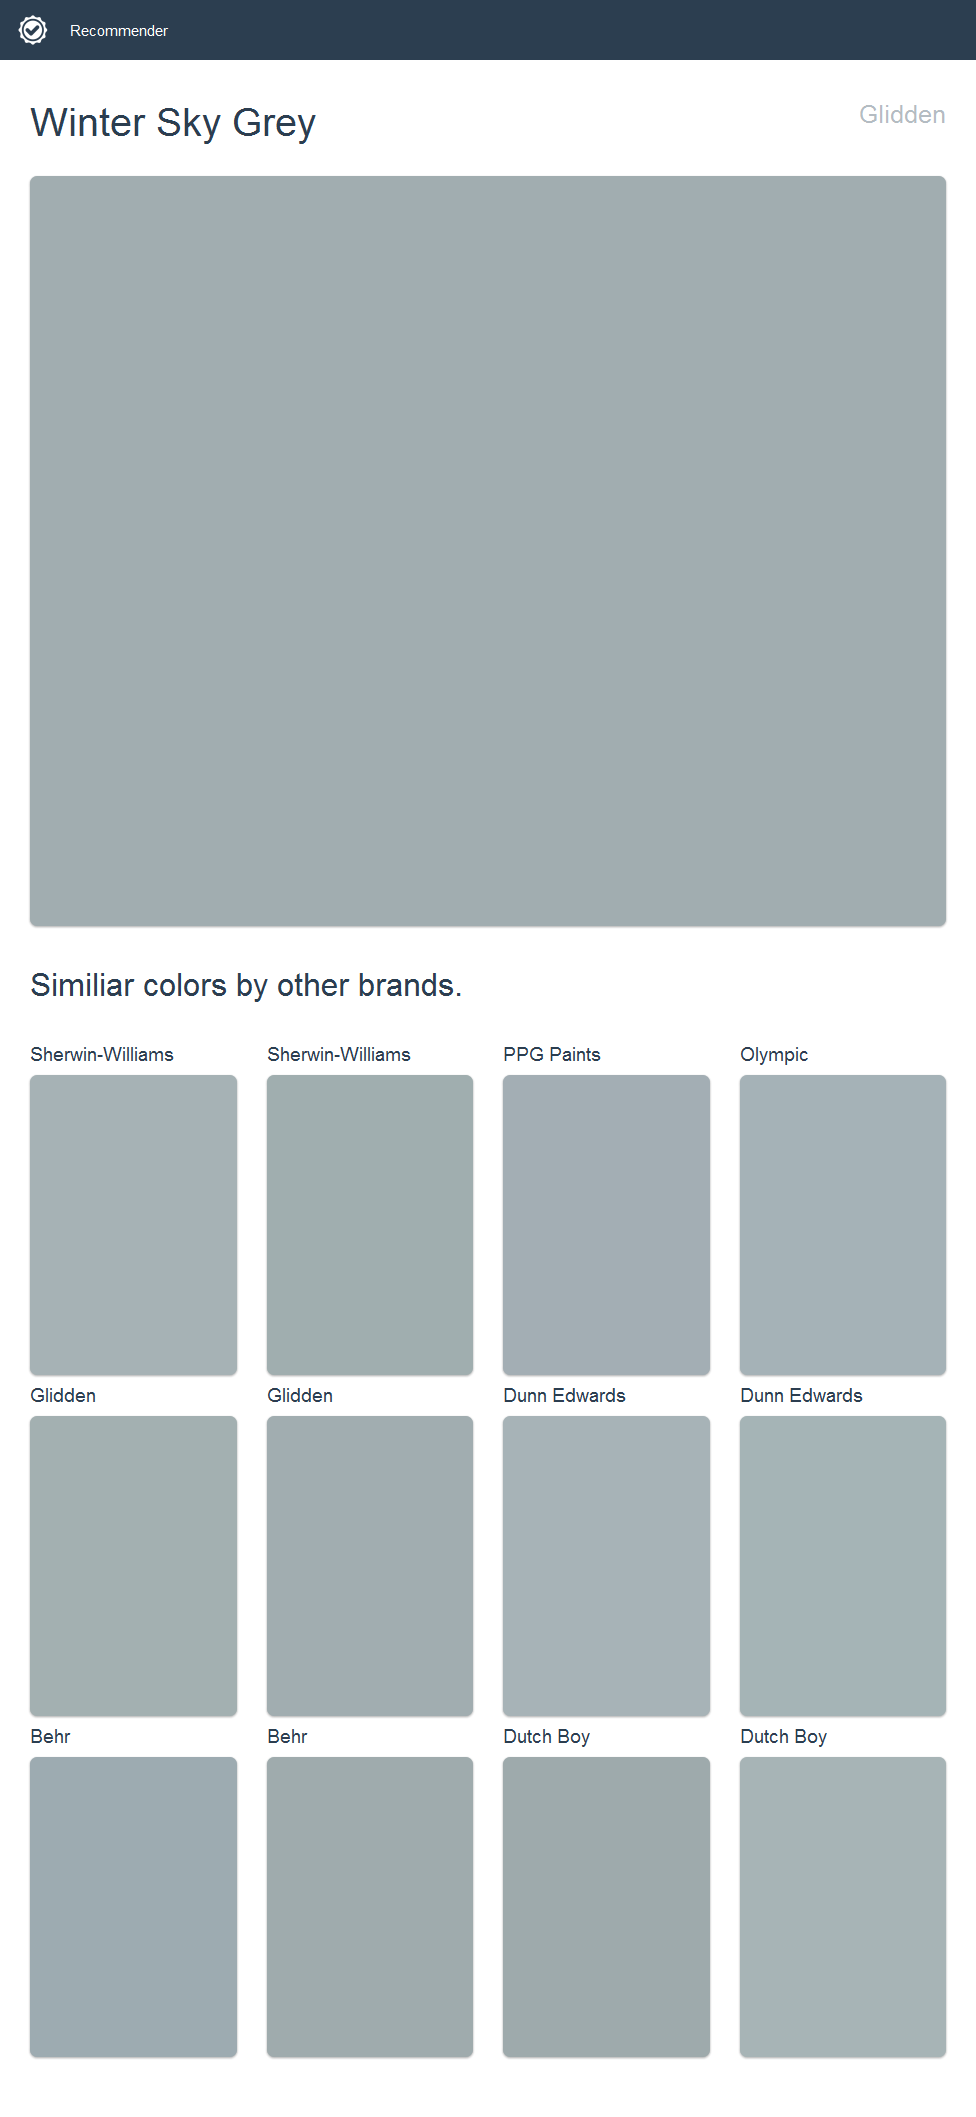 Winter Sky Grey Glidden Click The Image To See Similiar Colors By Other Brands